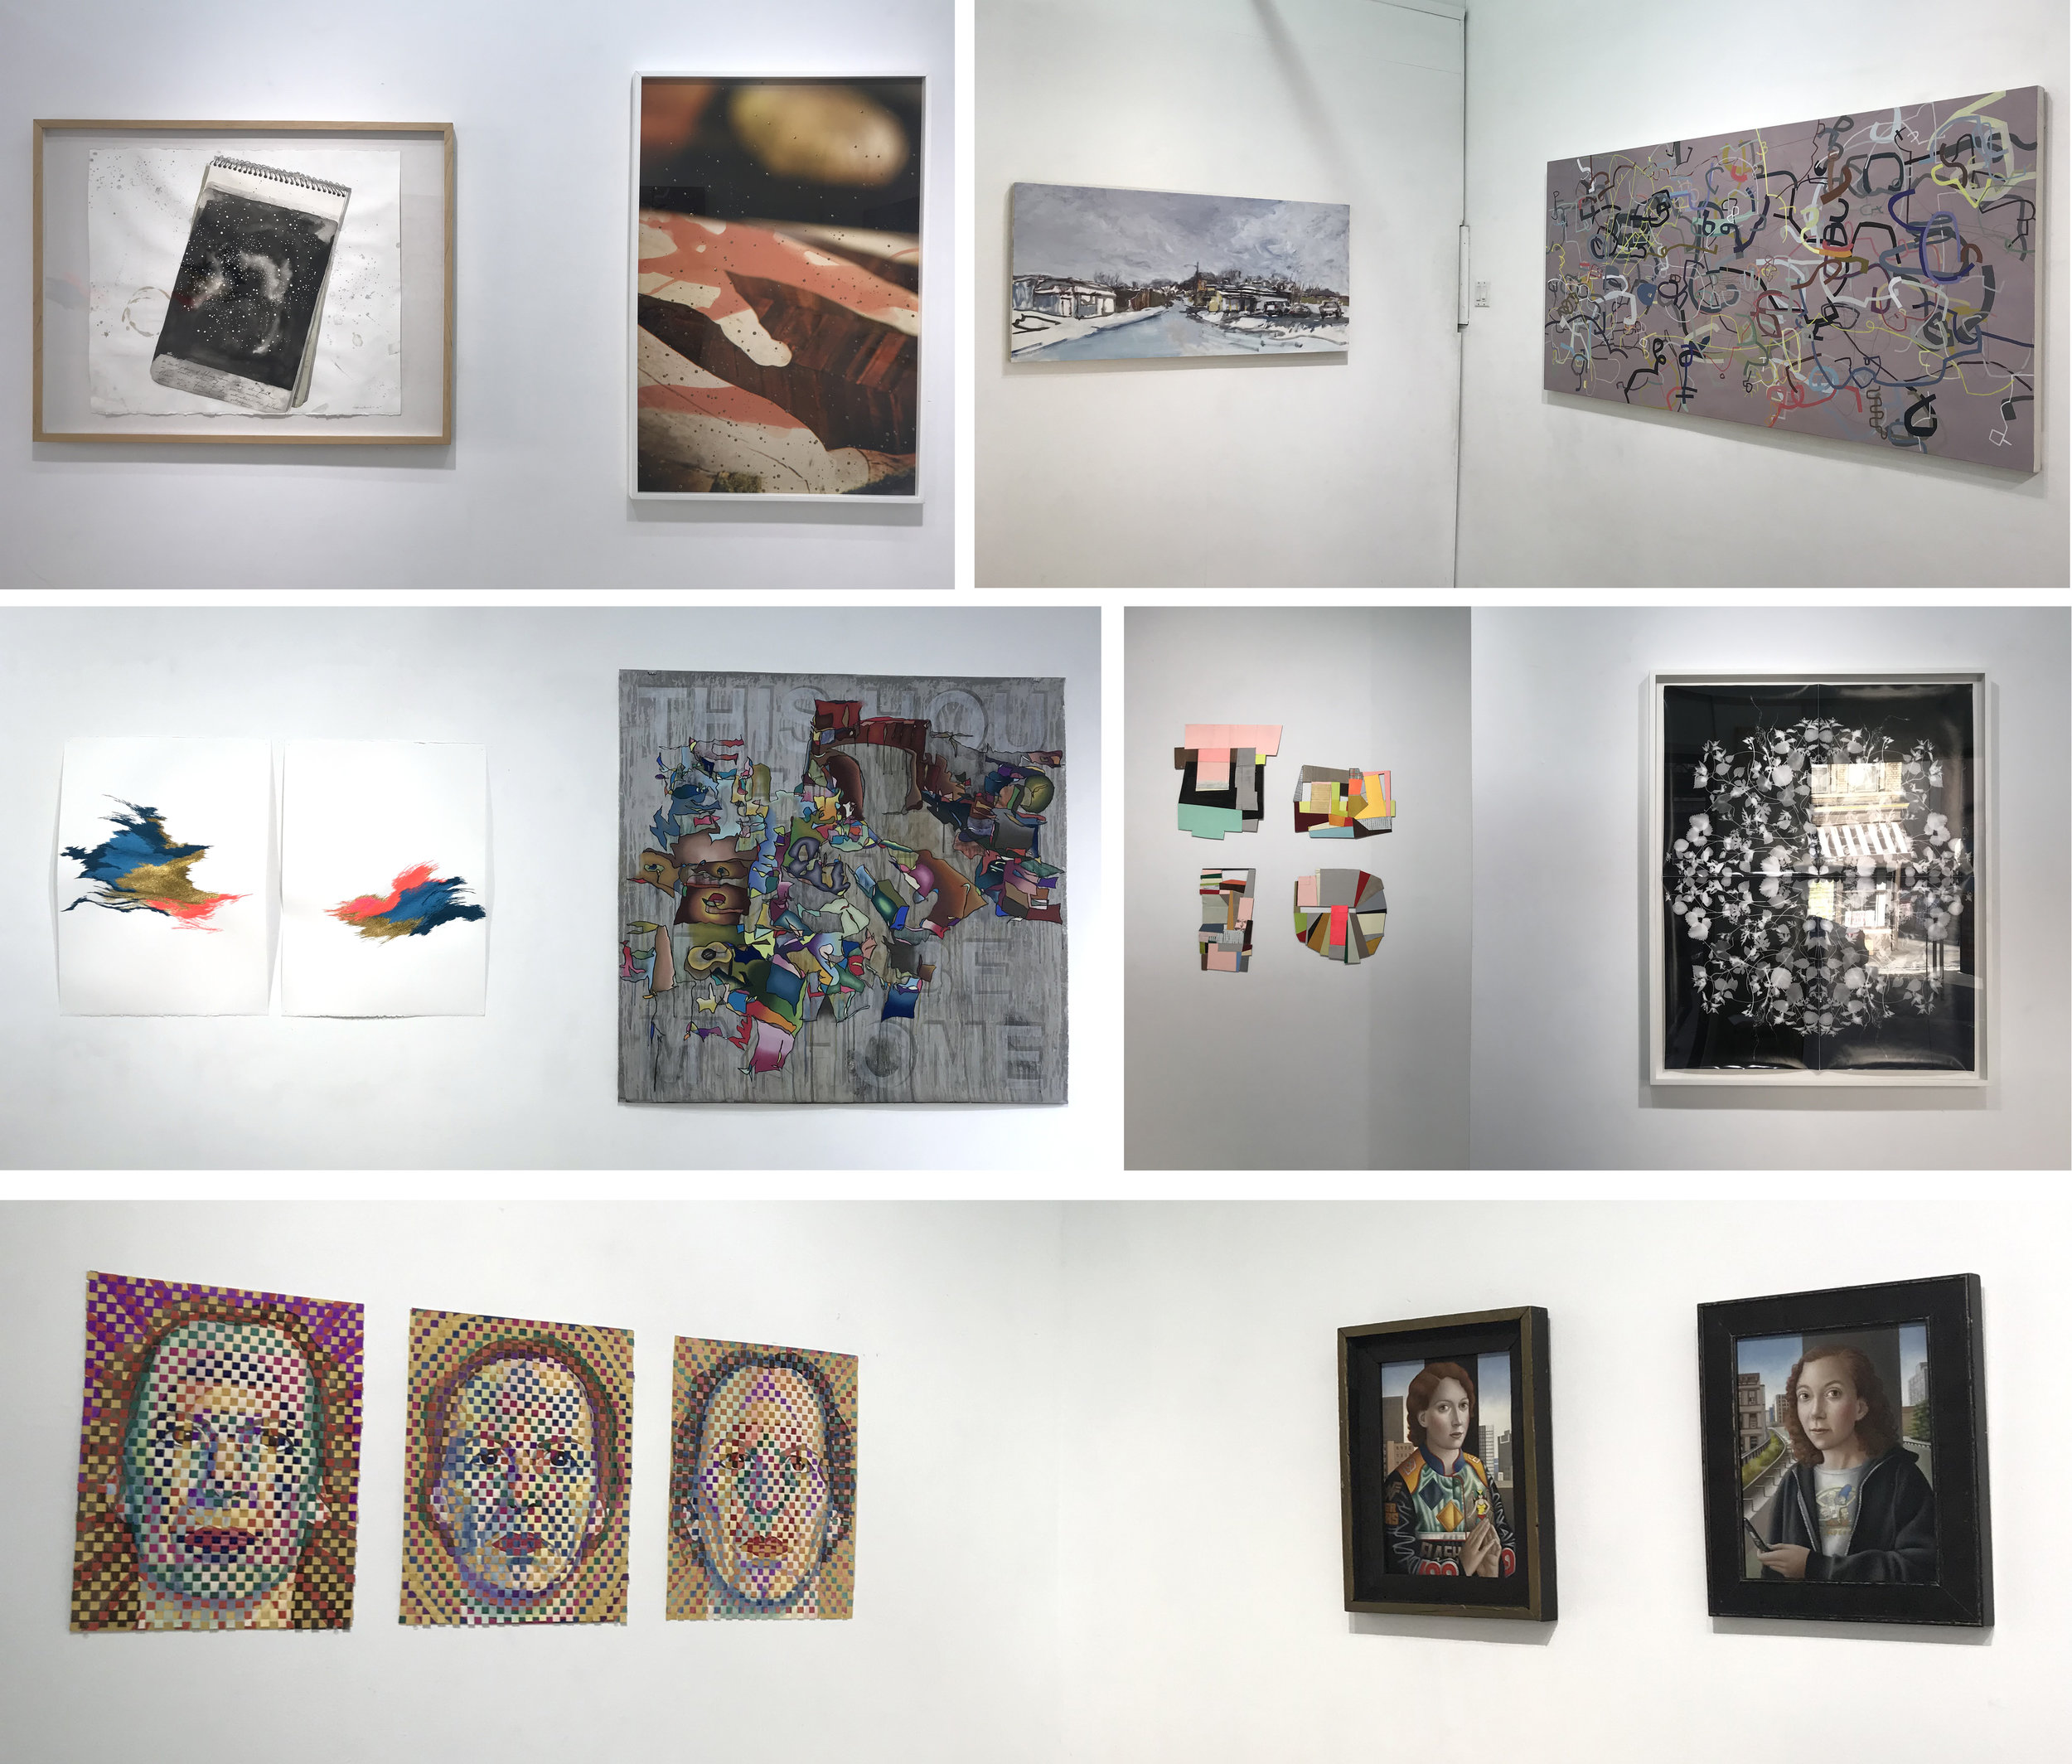 Installation shots of the artist pairs